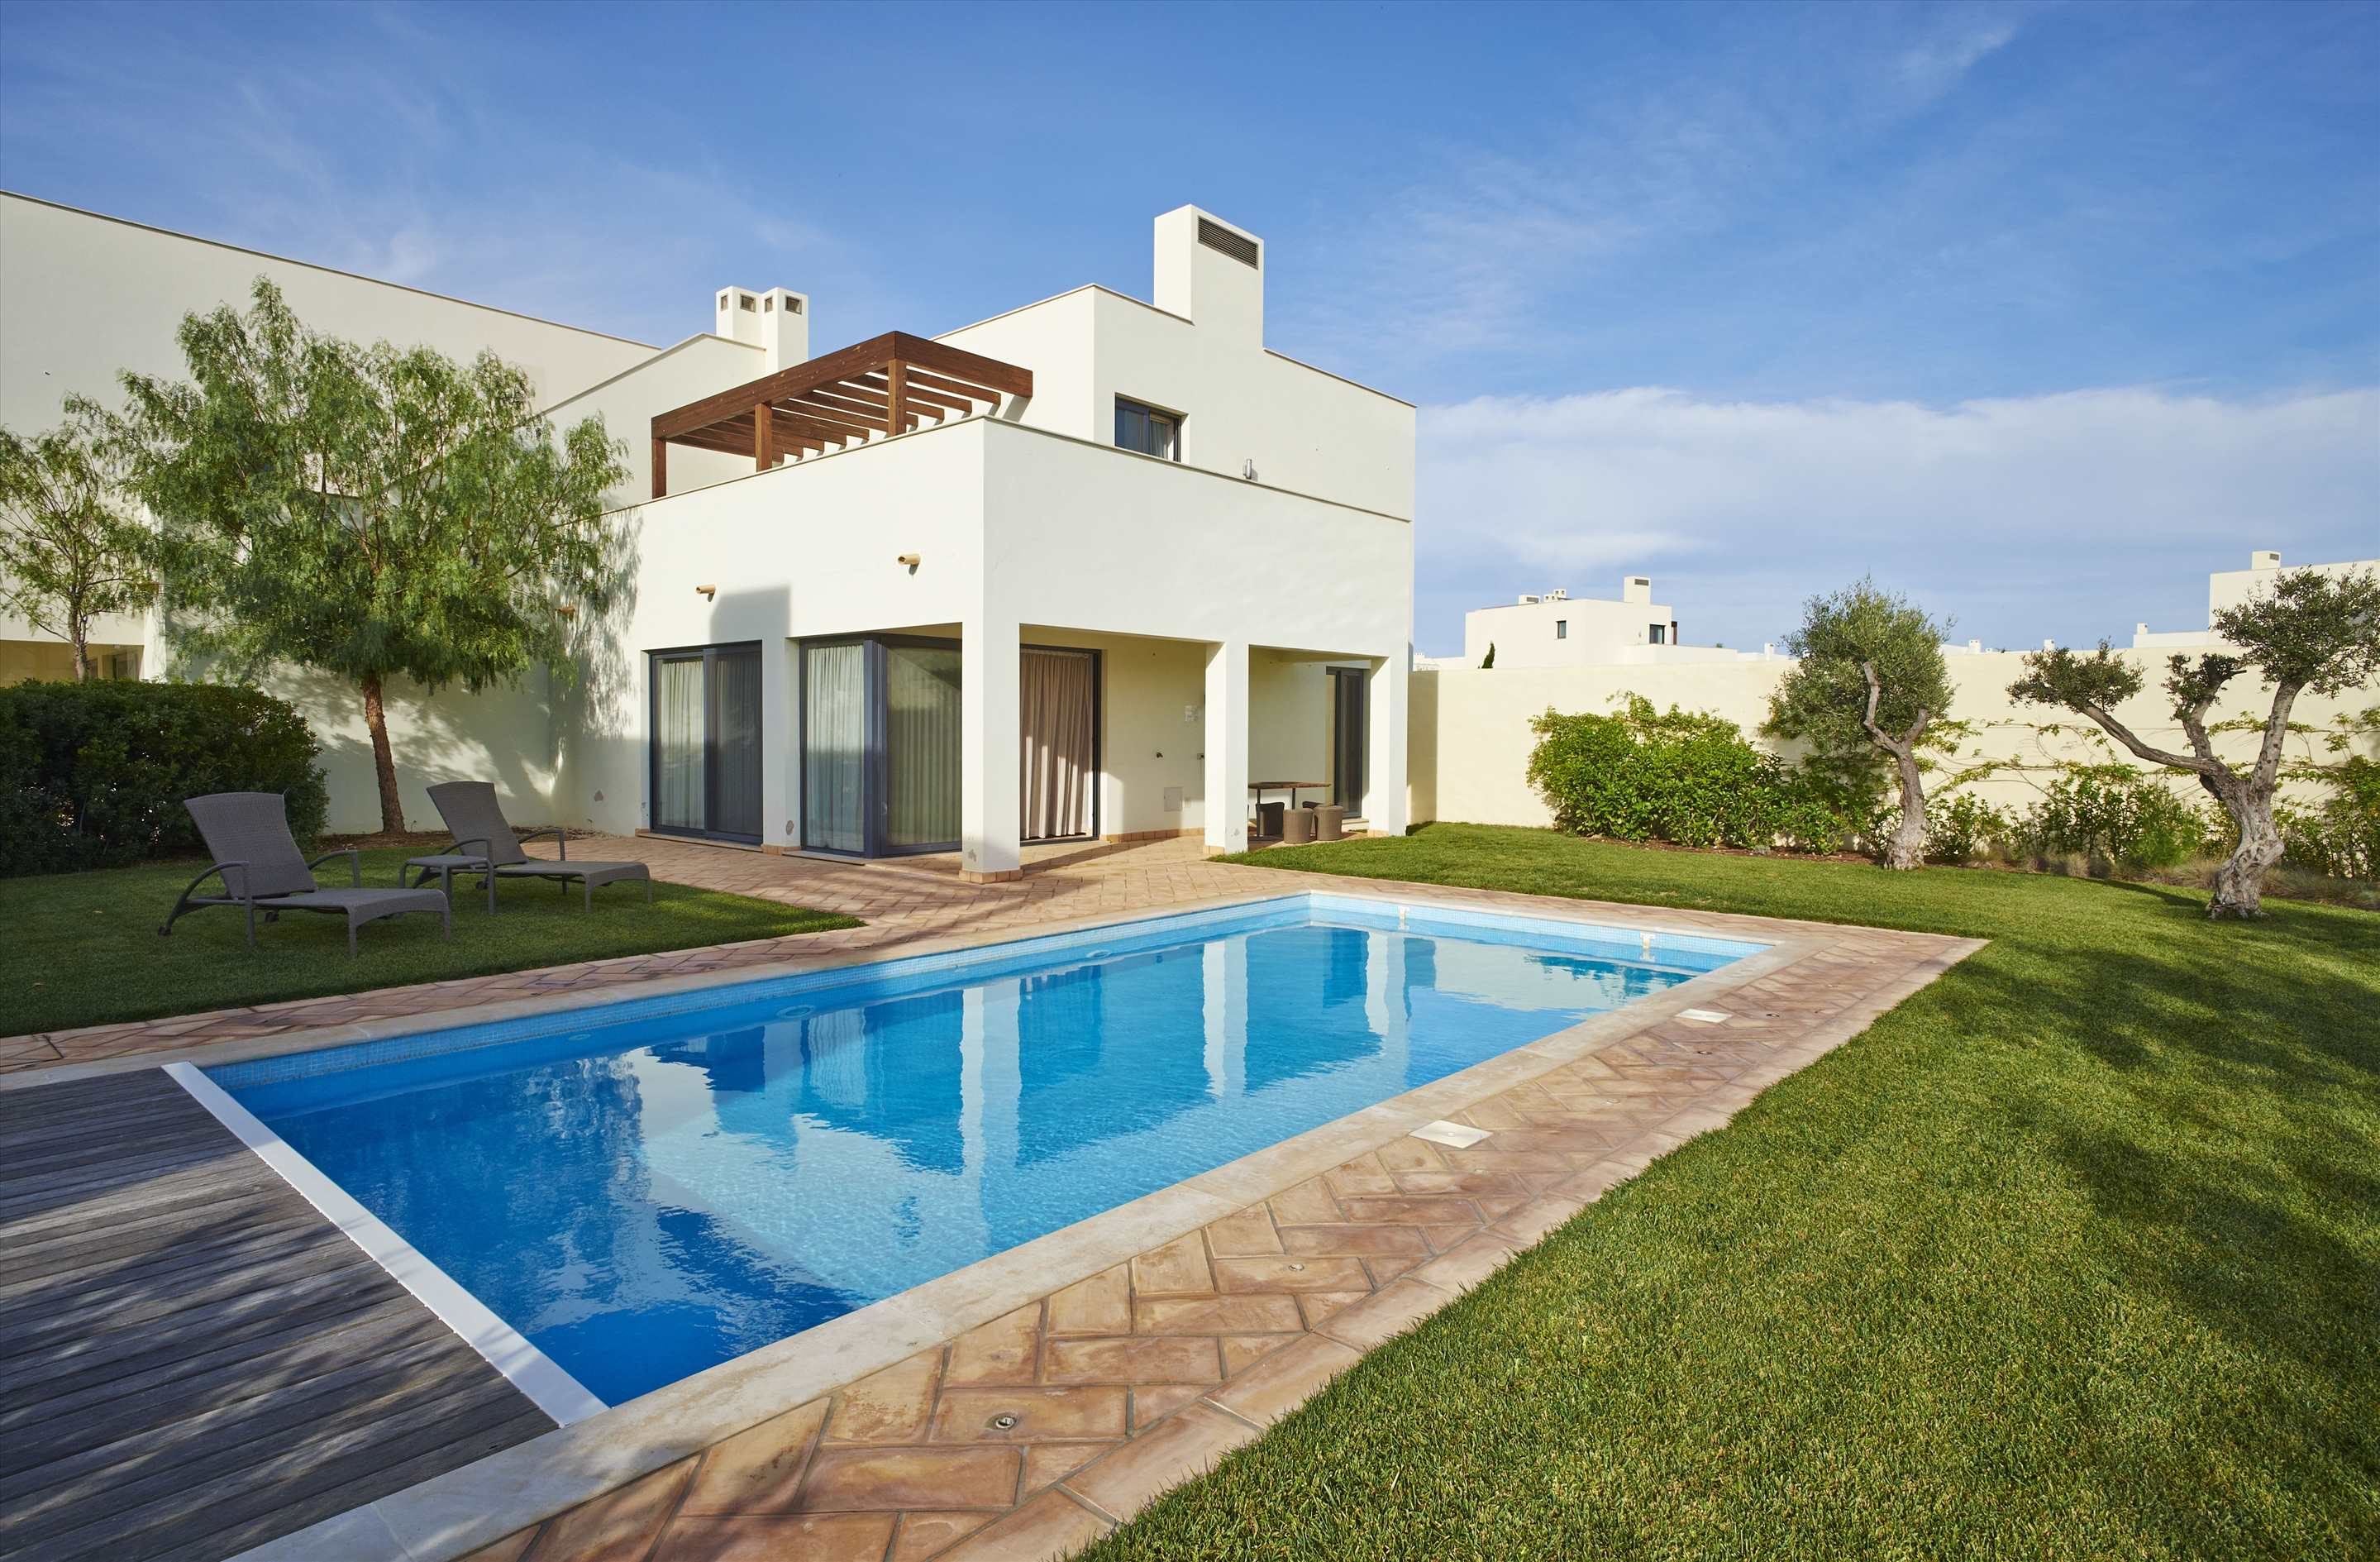 Martinhal Village Pinewood House with private pool, Grand Deluxe Two Bedrooms, 2 bedroom villa in Martinhal Sagres, Algarve Photo #1